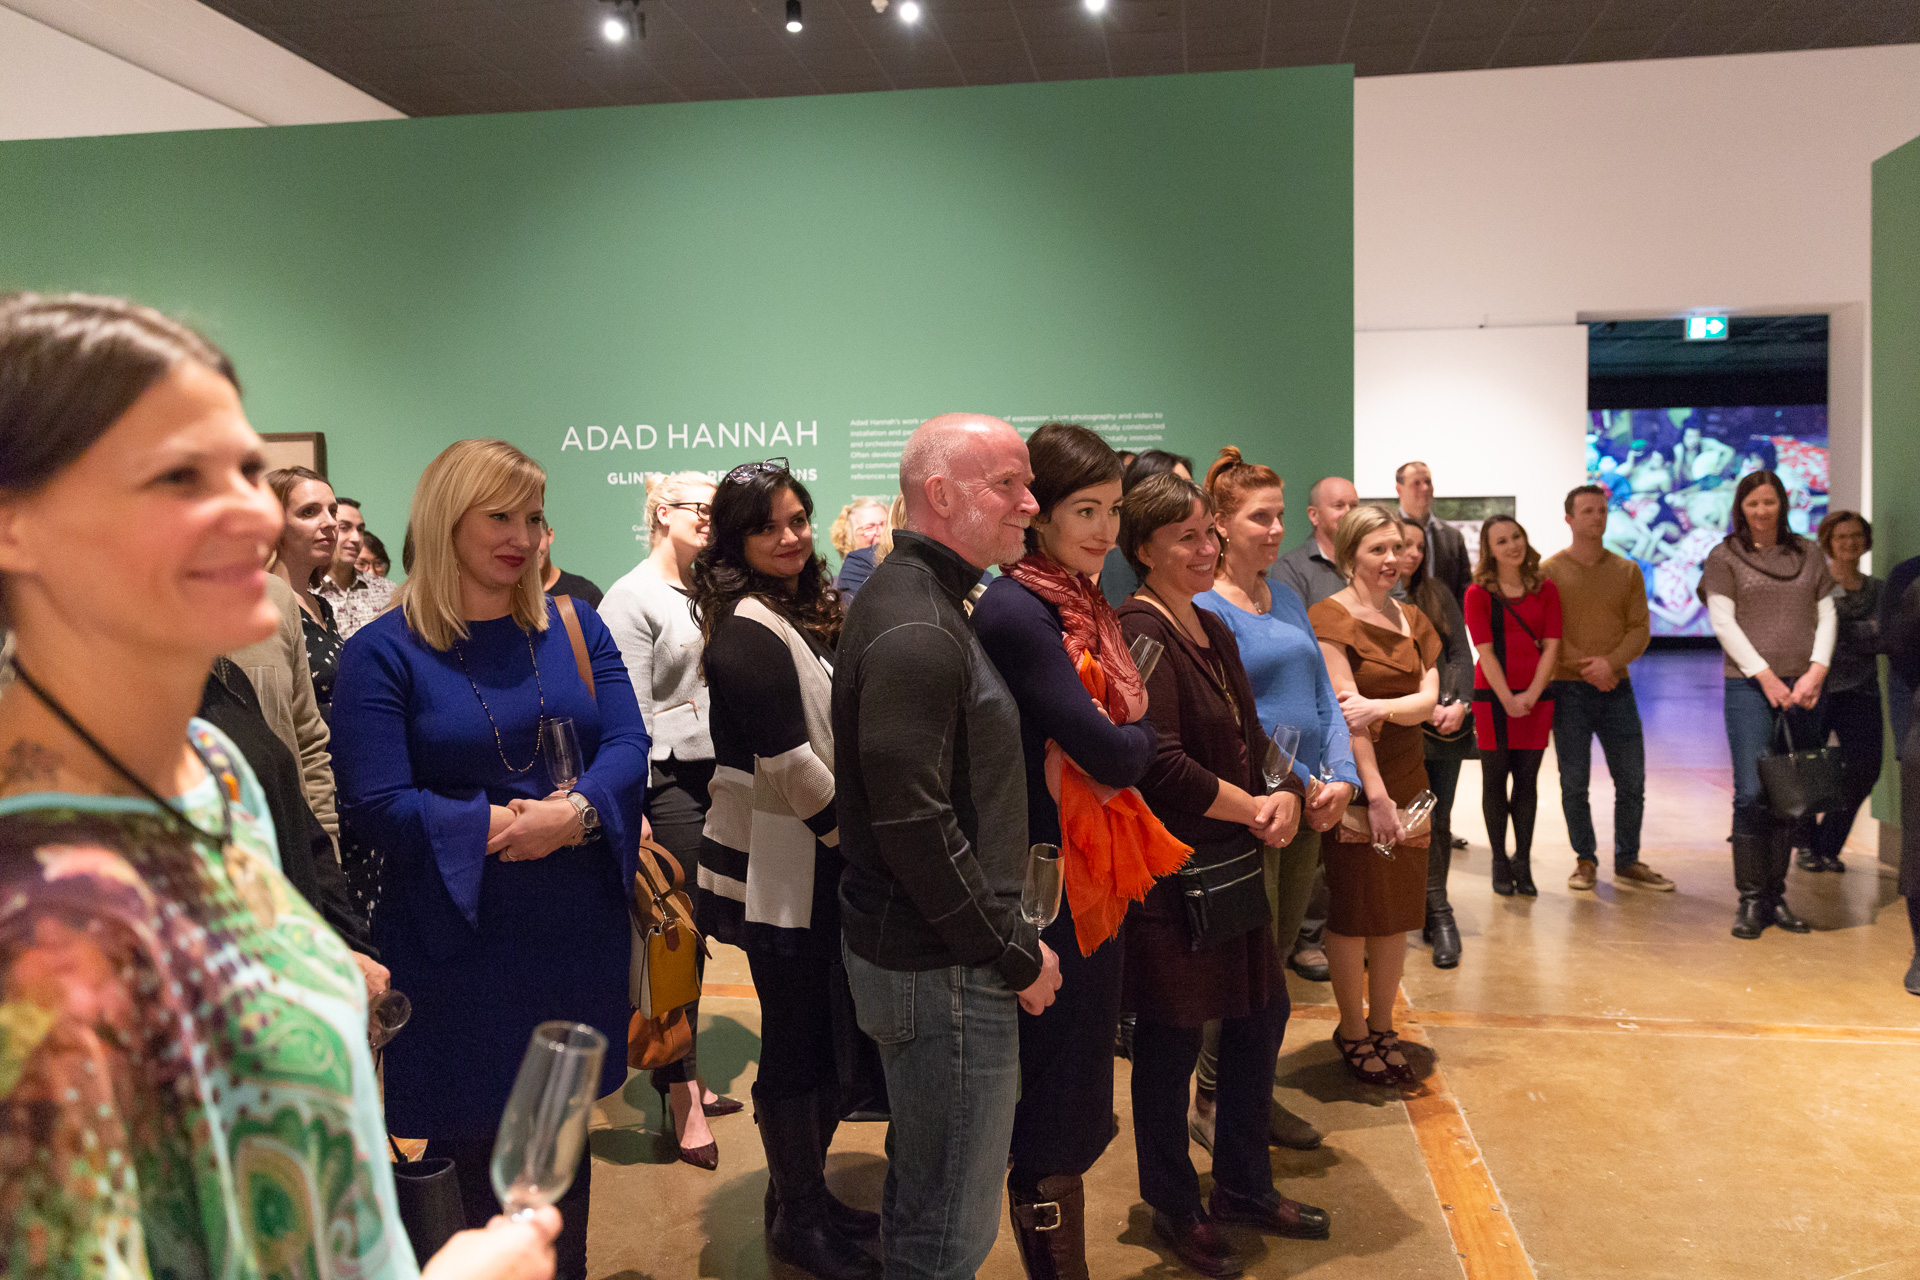 Side view of a large group of smiling people on a guided tour of an Adad Hannah exhibition